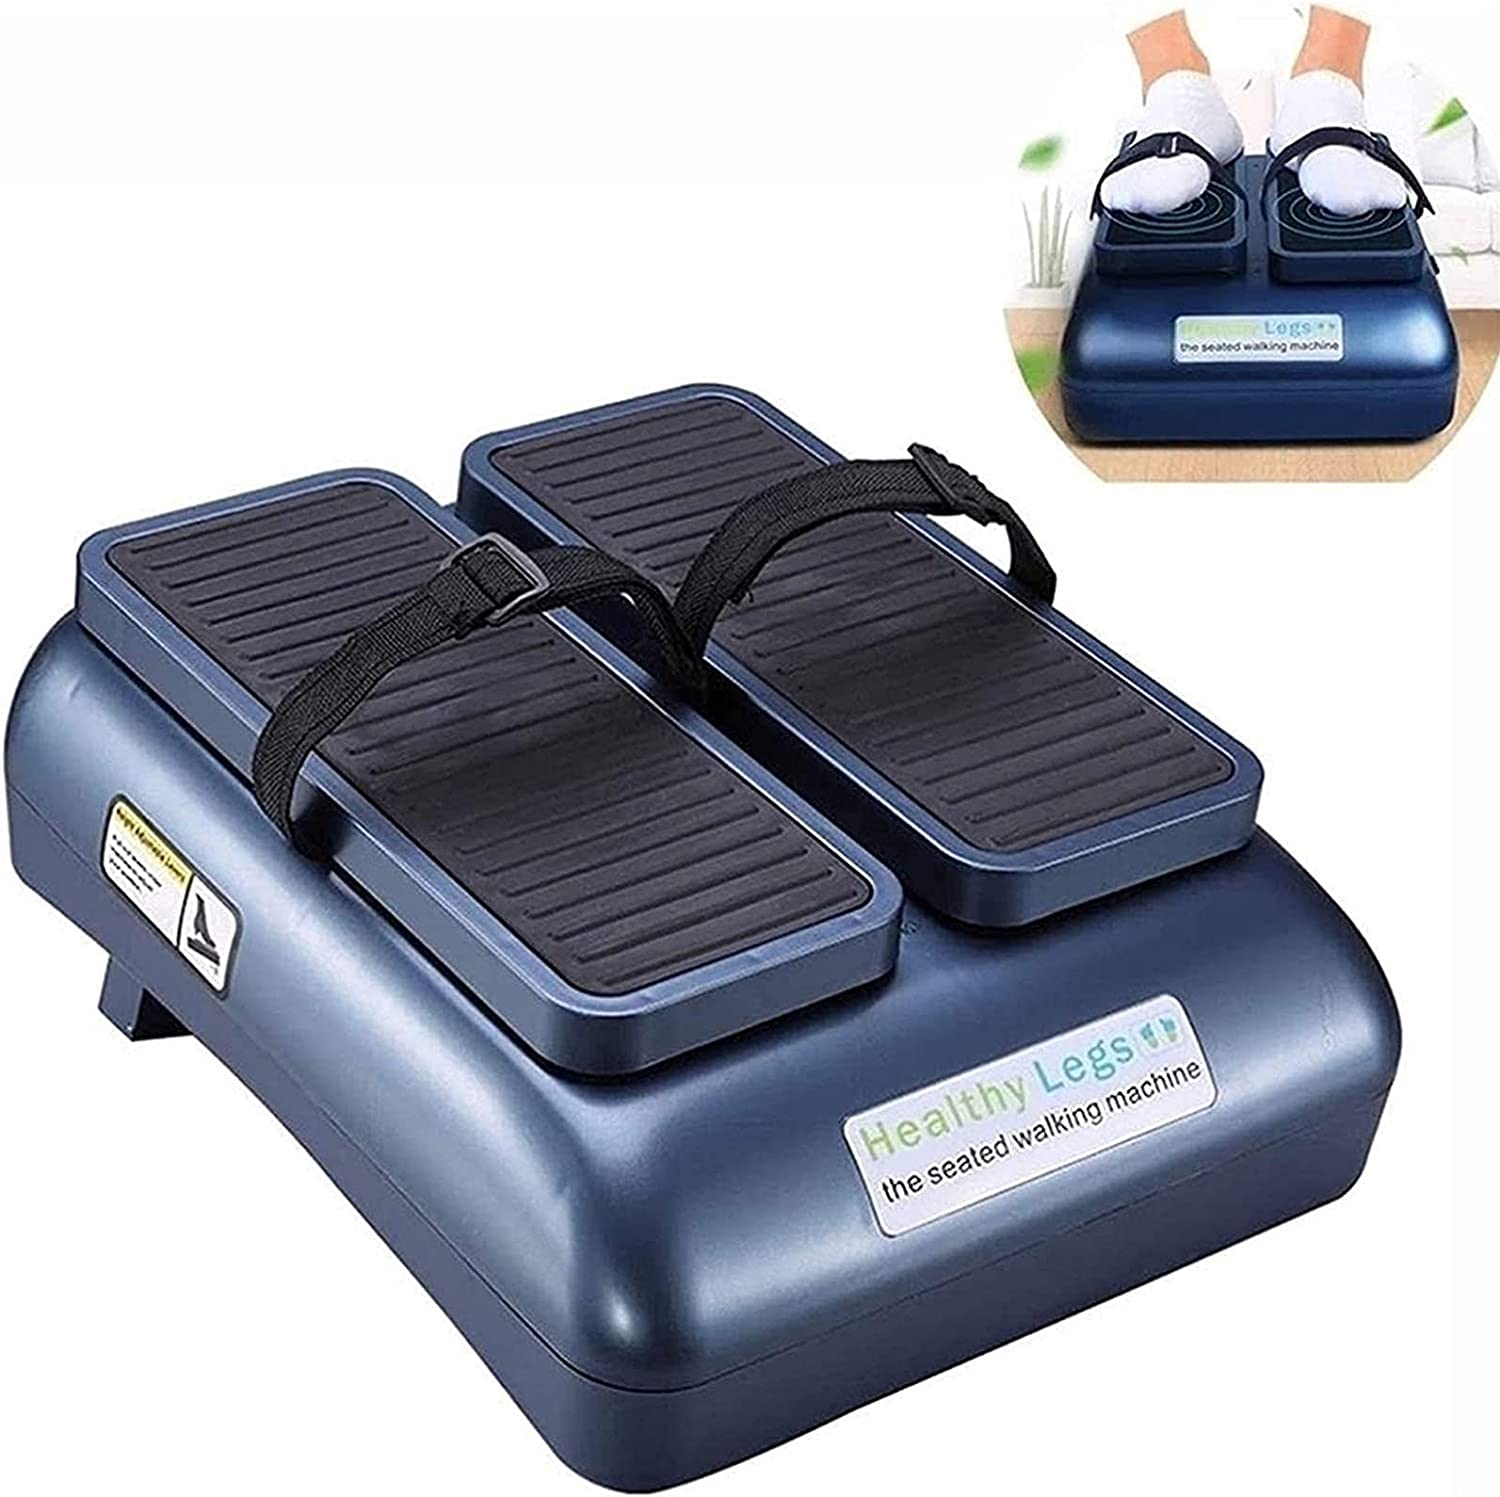 Ranking TOP1 GYYlucky Home Soldering Physiotherapy Machine for Seniors Pas Circulation